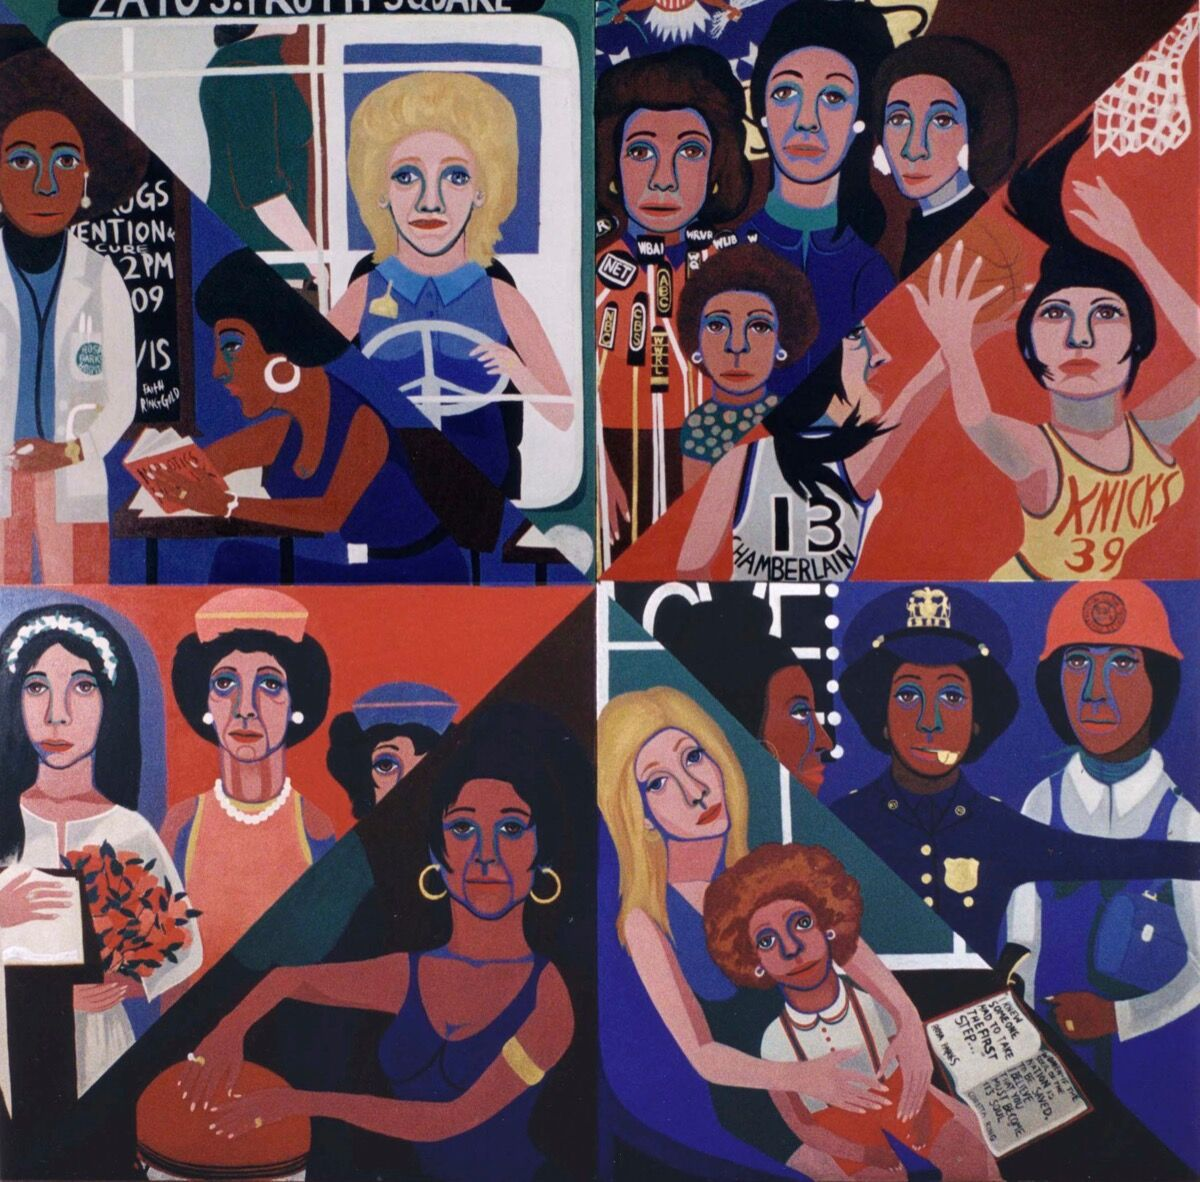 Faith Ringgold, For the Women's House, 1971. Courtesy of Rose M. Singer Center, Rikers Island Correctional Center. © 2017 Faith Ringgold / Artists Rights Society (ARS), New York. Courtesy of the Brooklyn Museum.